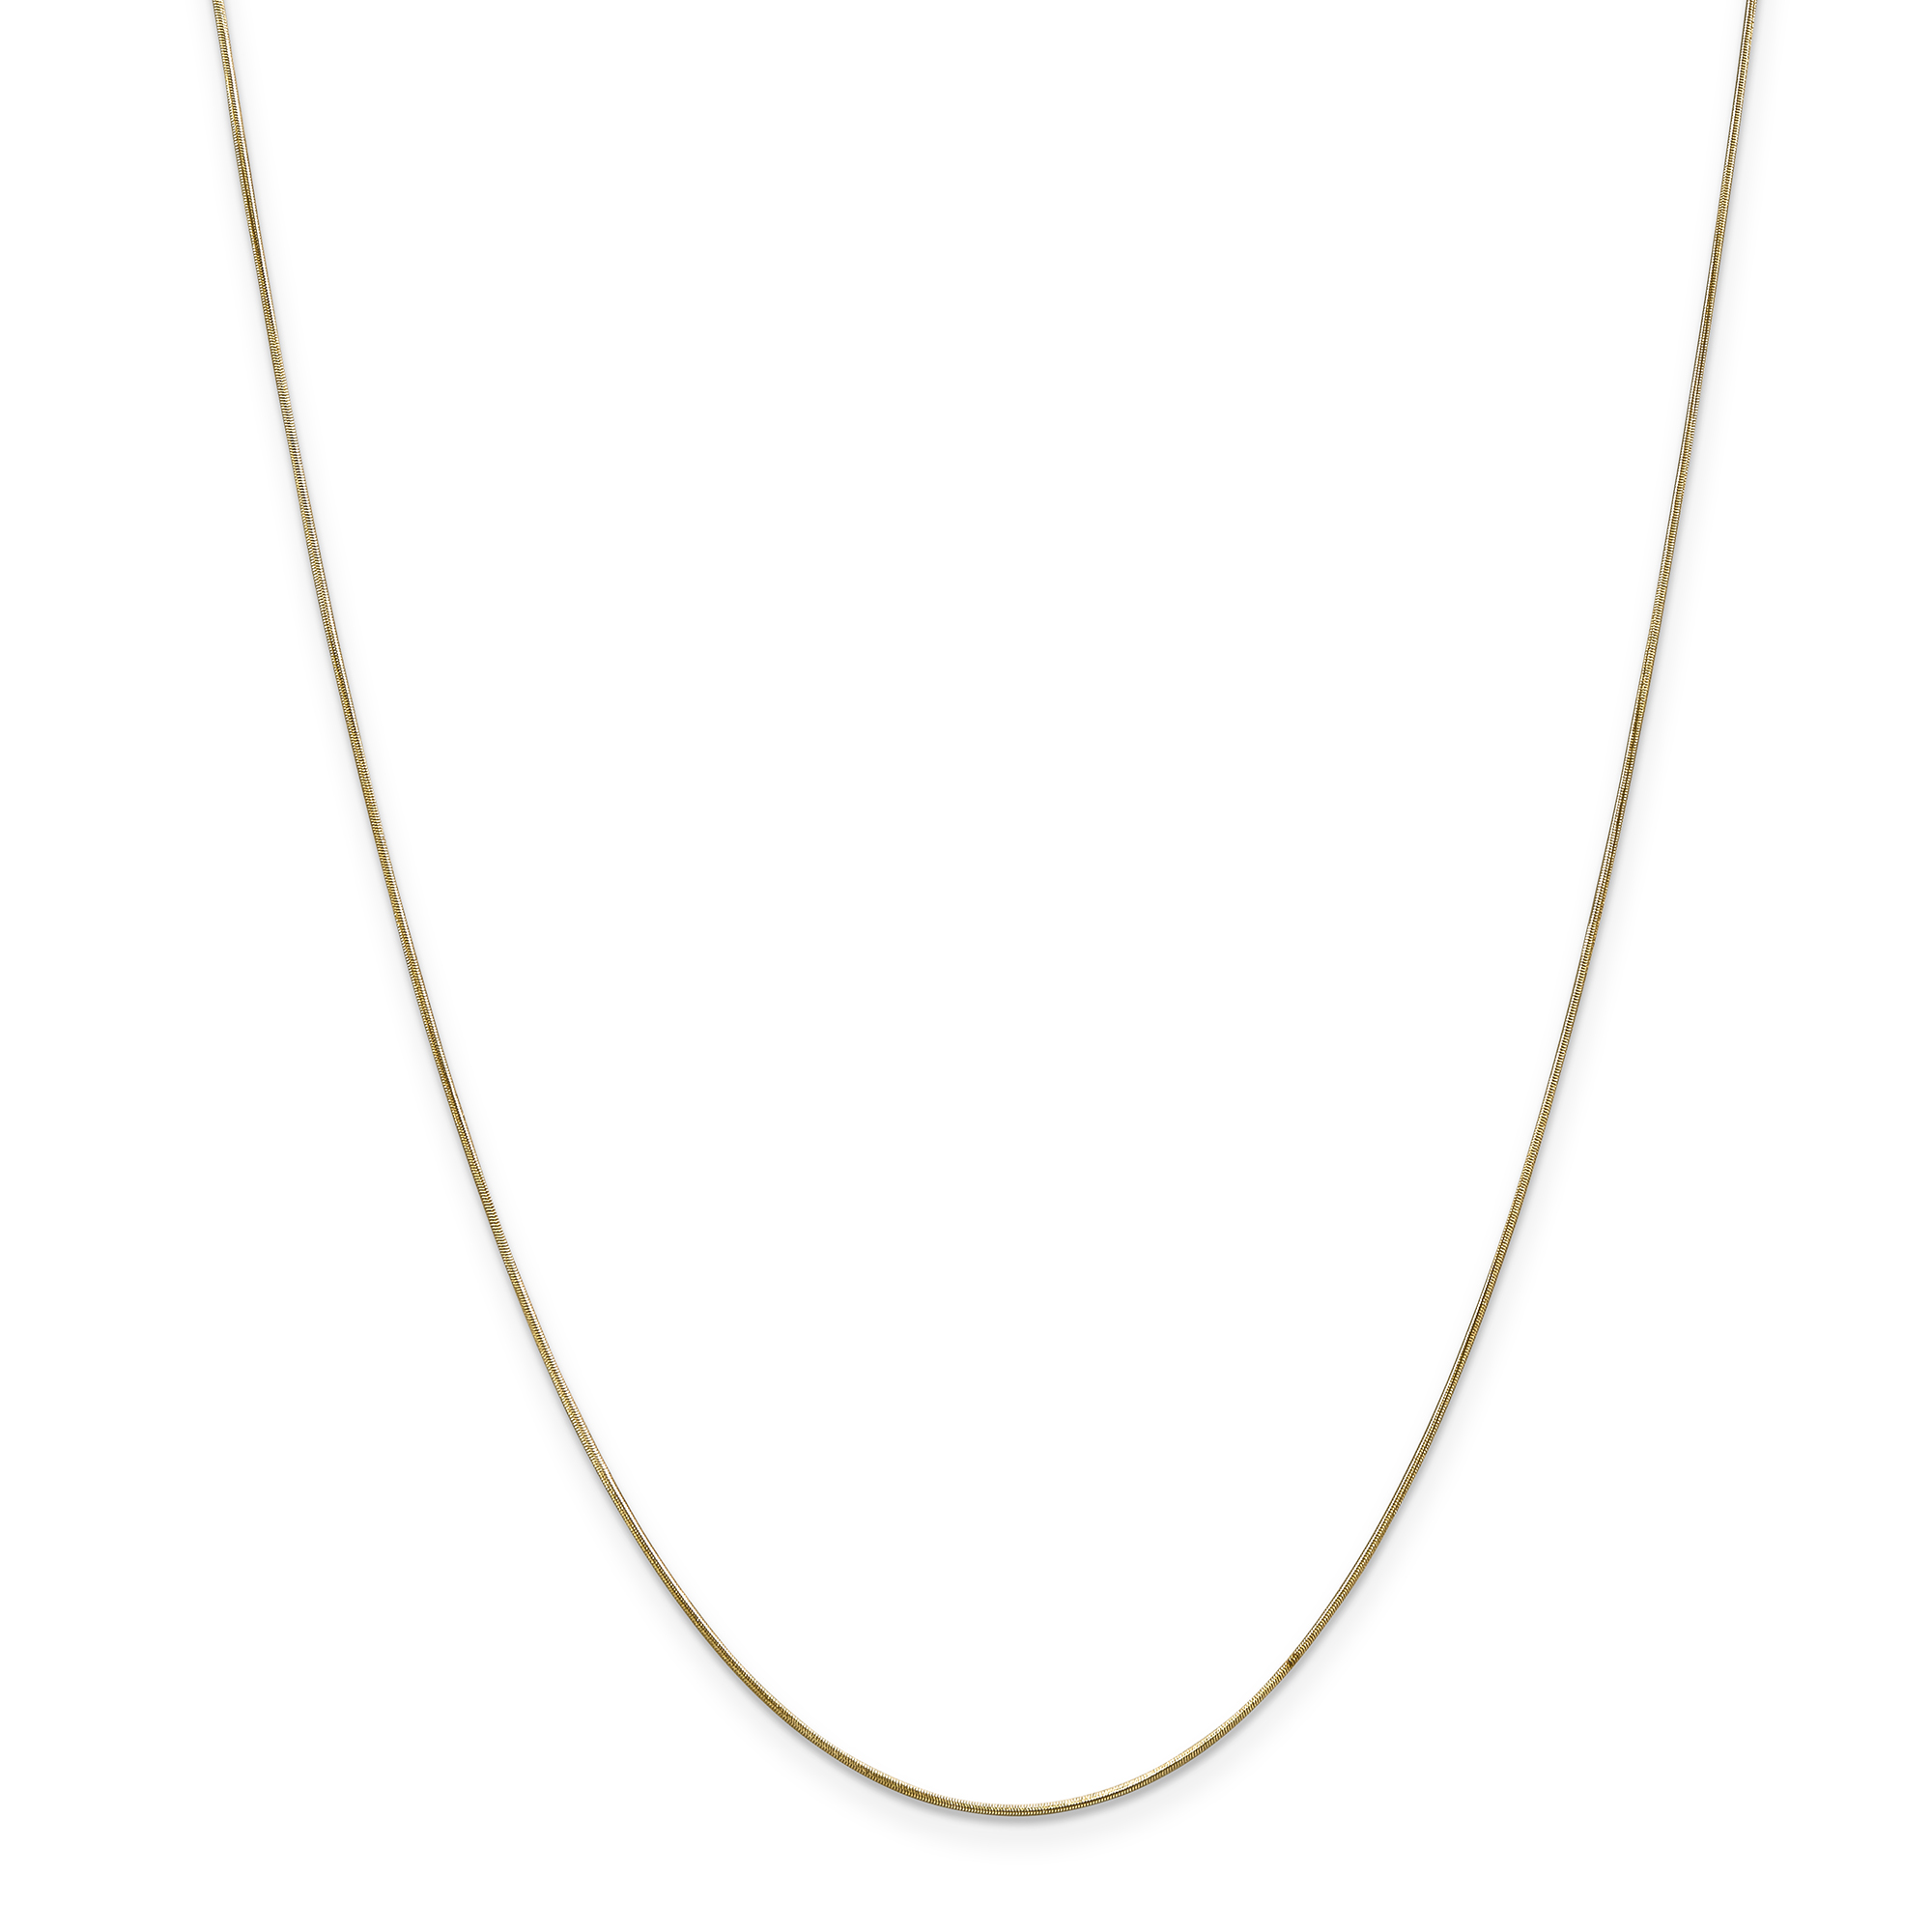 14K Yellow Gold .65mm Round Snake Chain 20 Inch - image 5 of 5